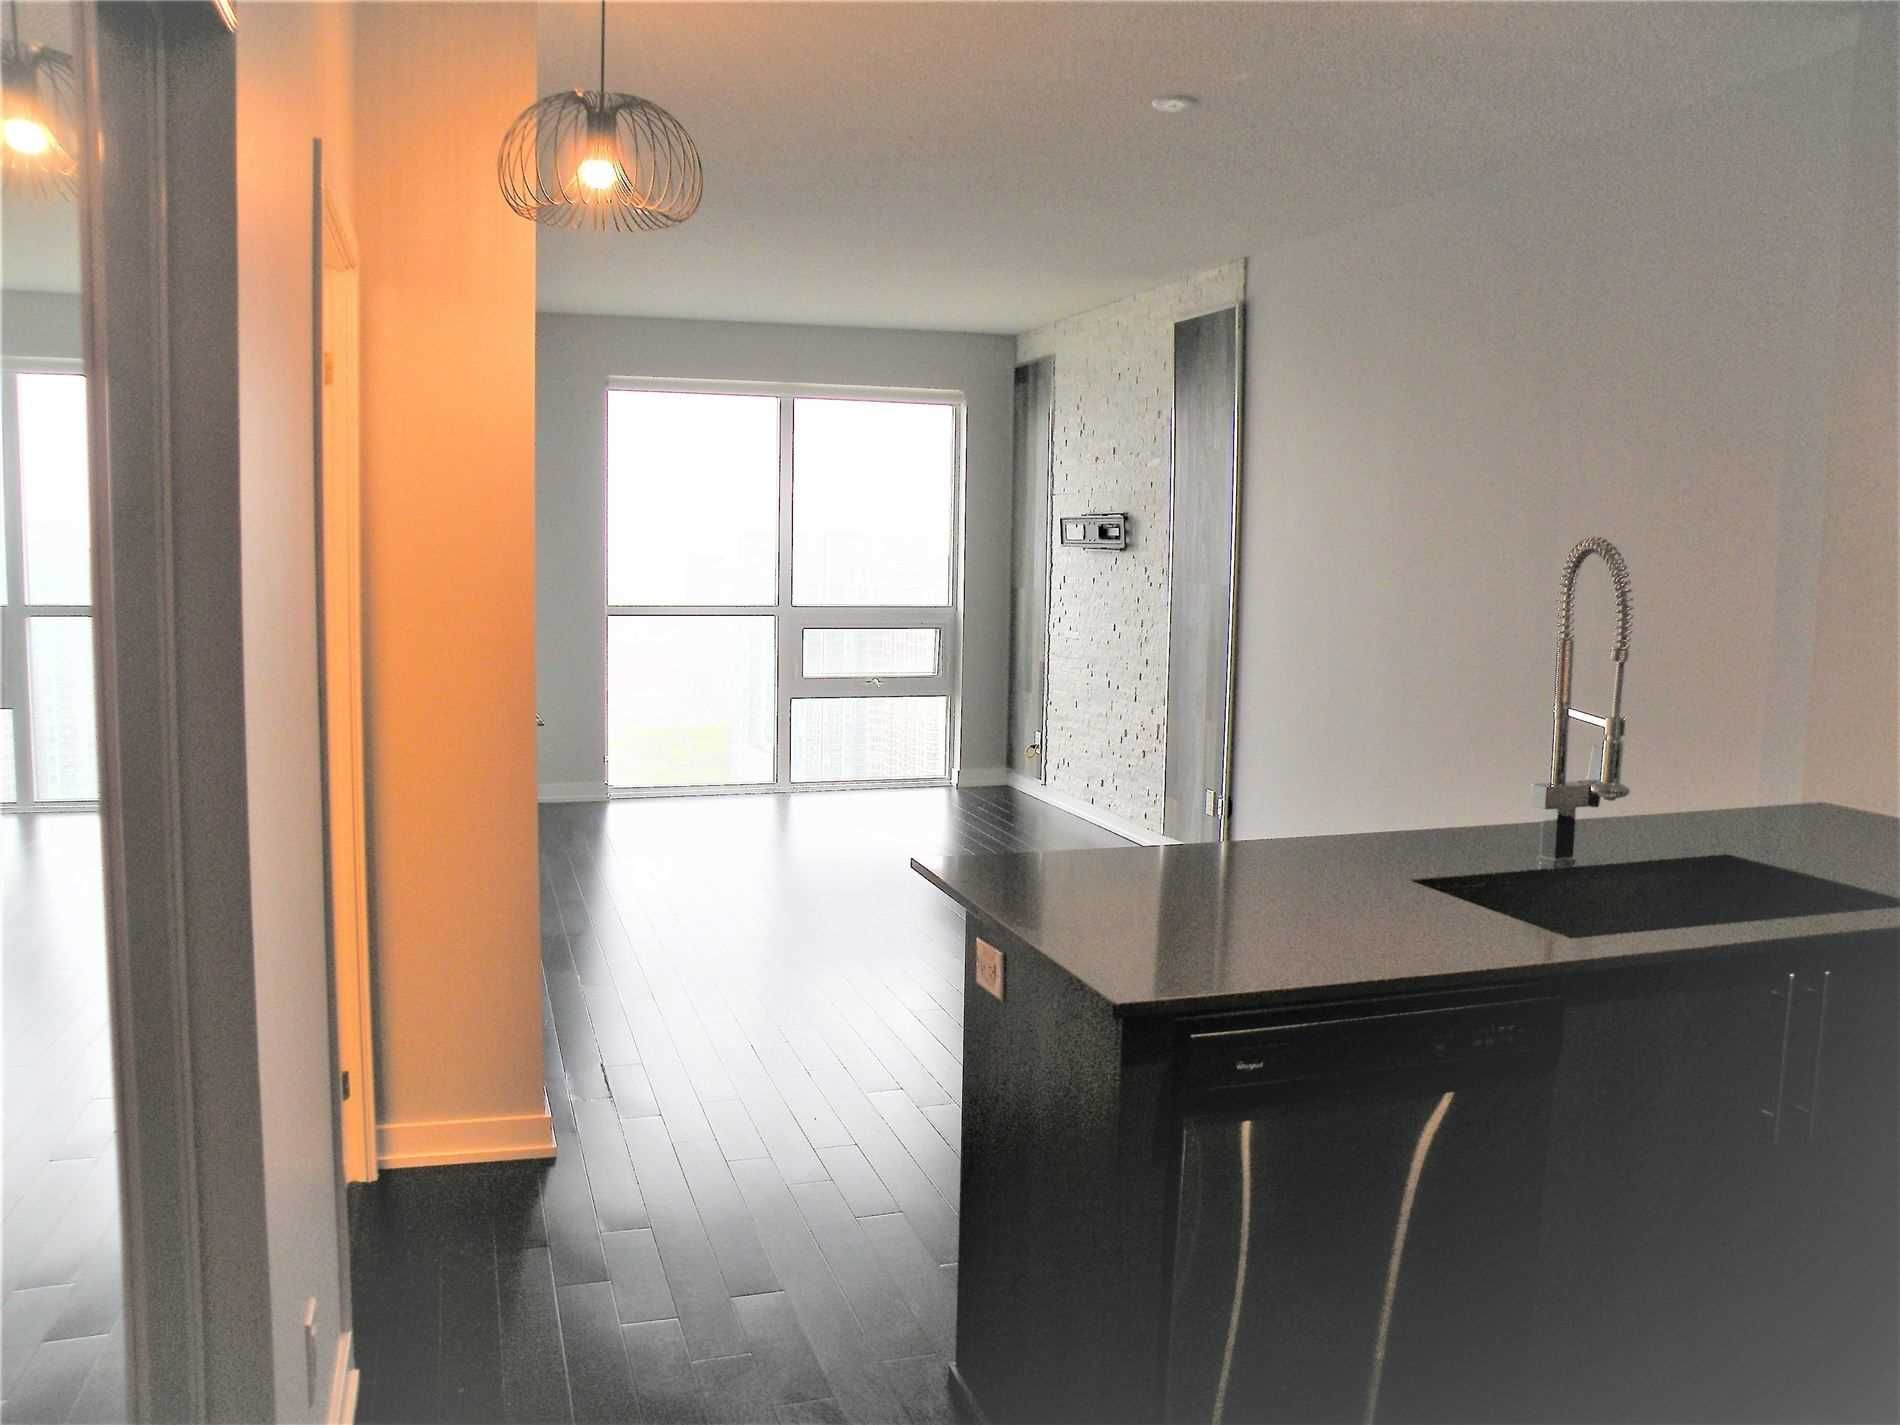 510 Curran Pl, unit 3608 for rent in Toronto - image #2